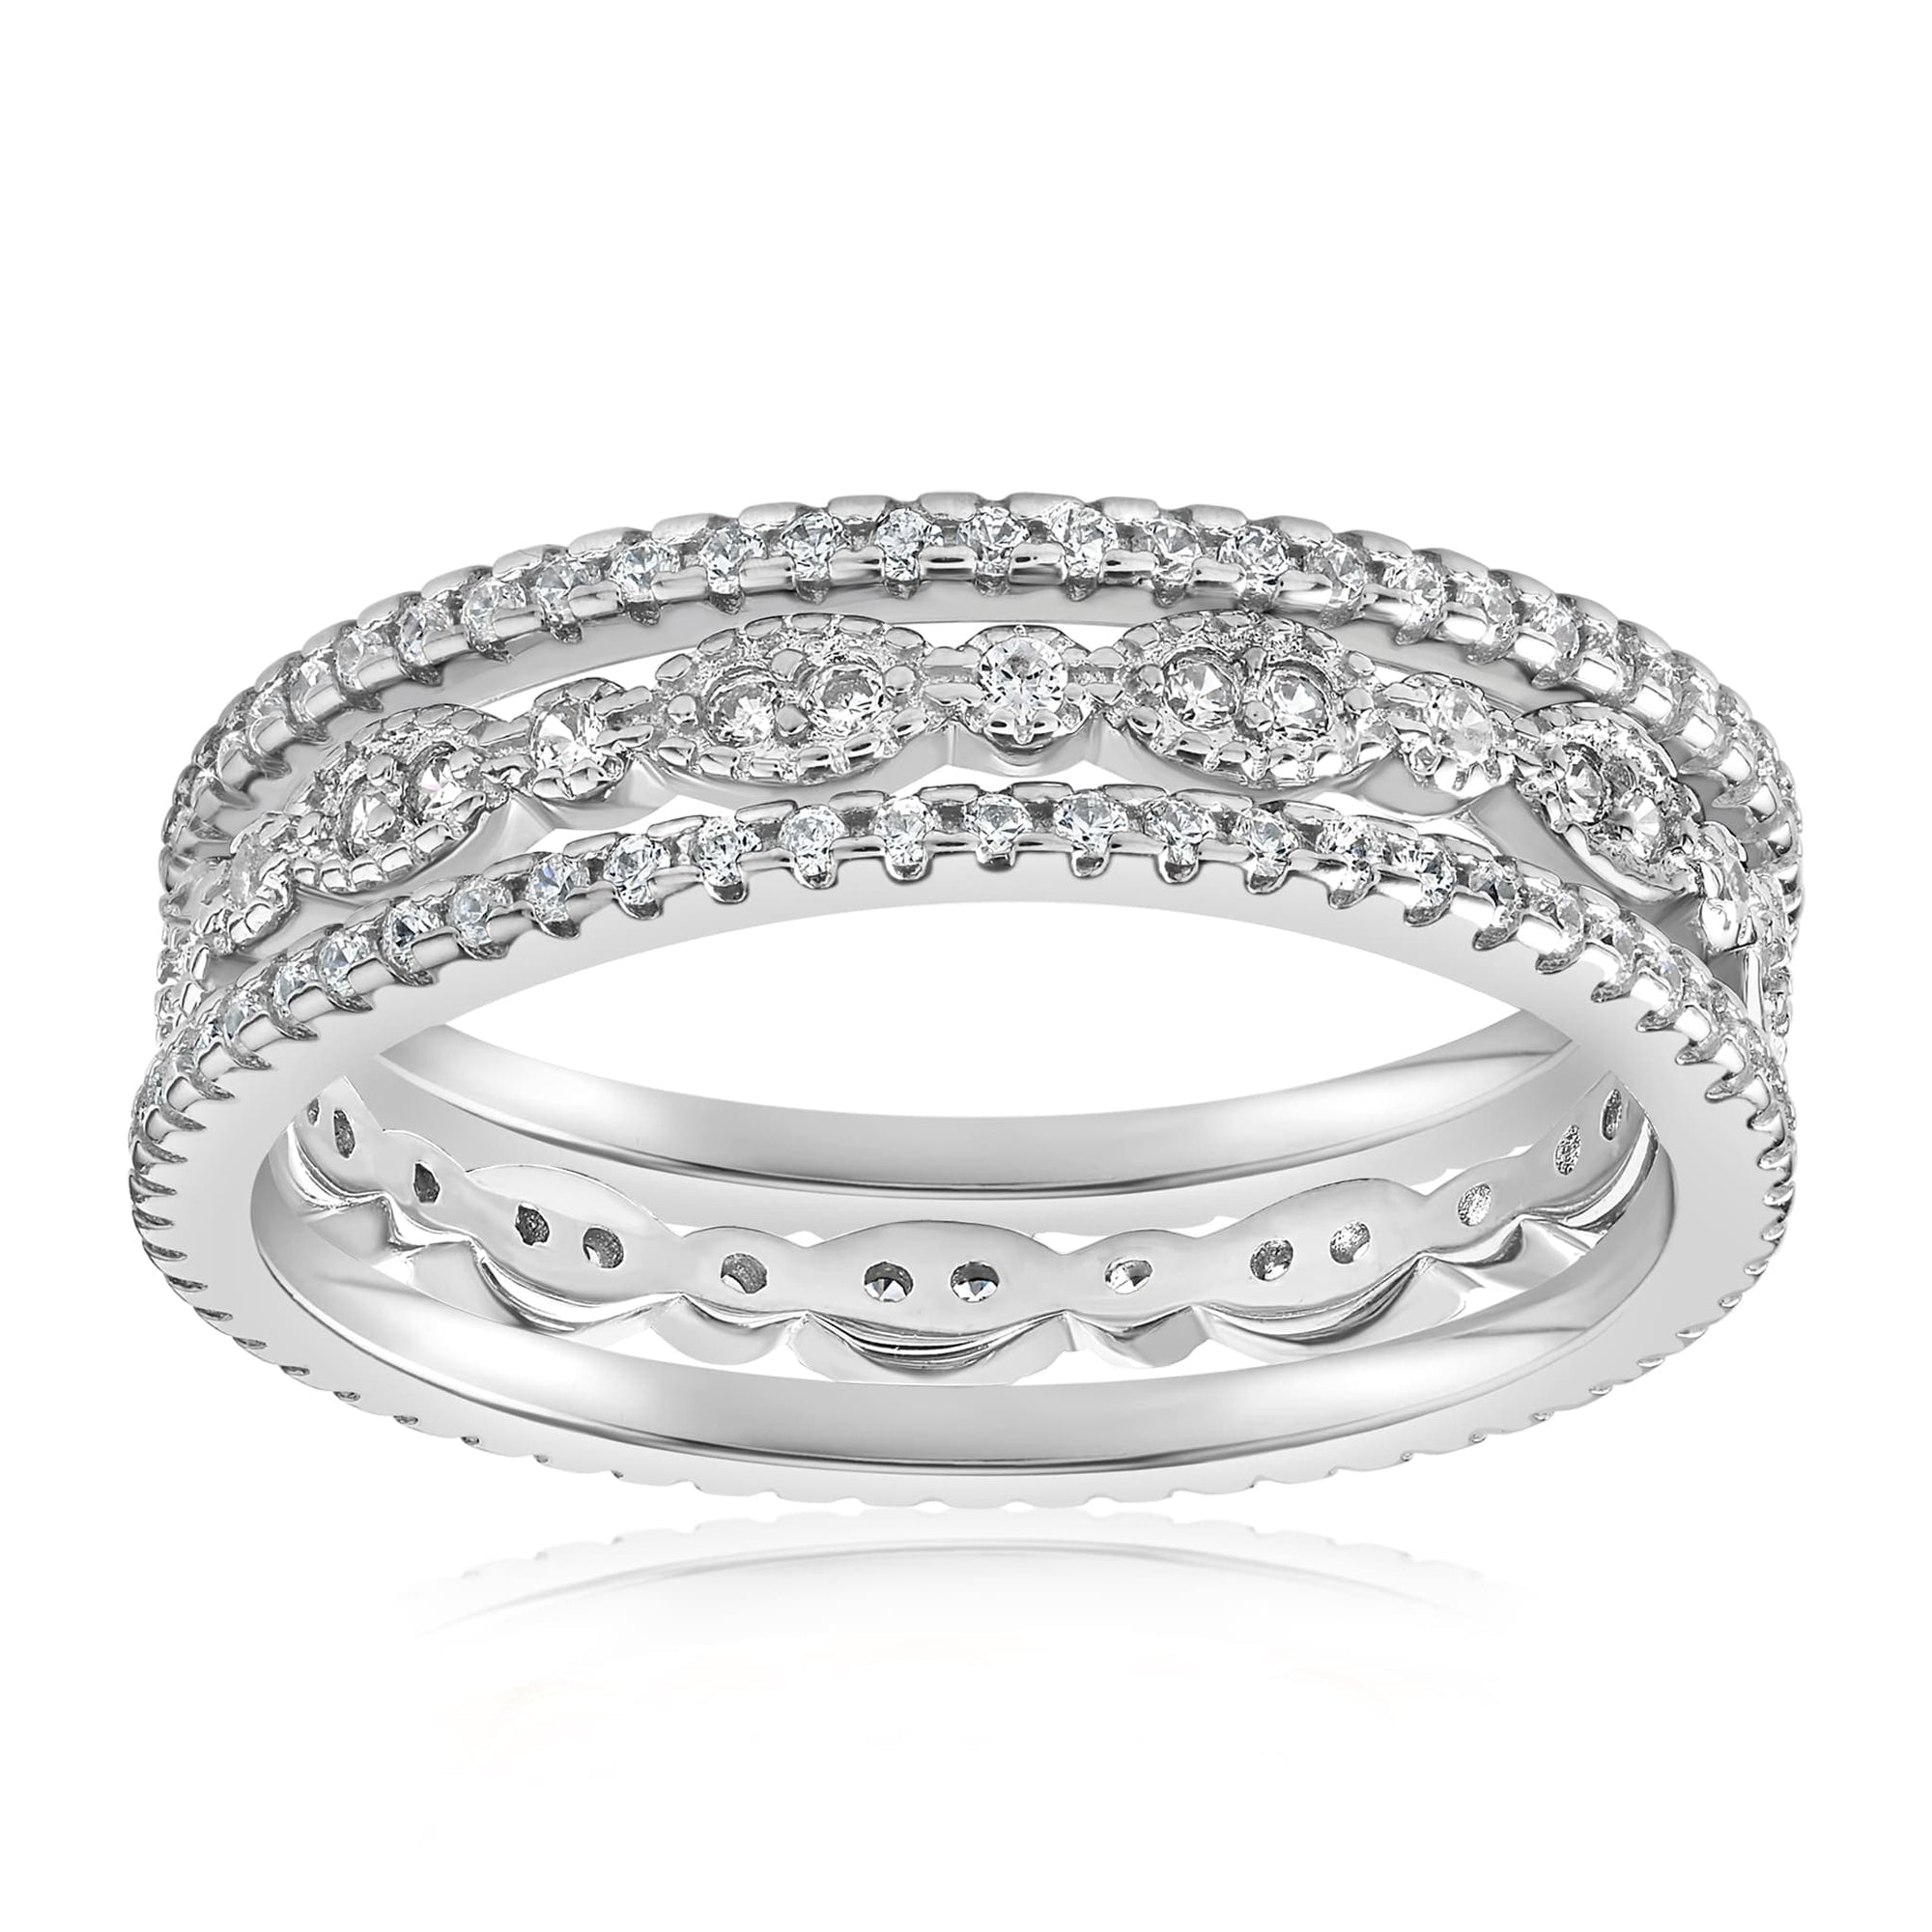 Juliana 3 Ring Set - Front View Facing Up - 925 Sterling Silver